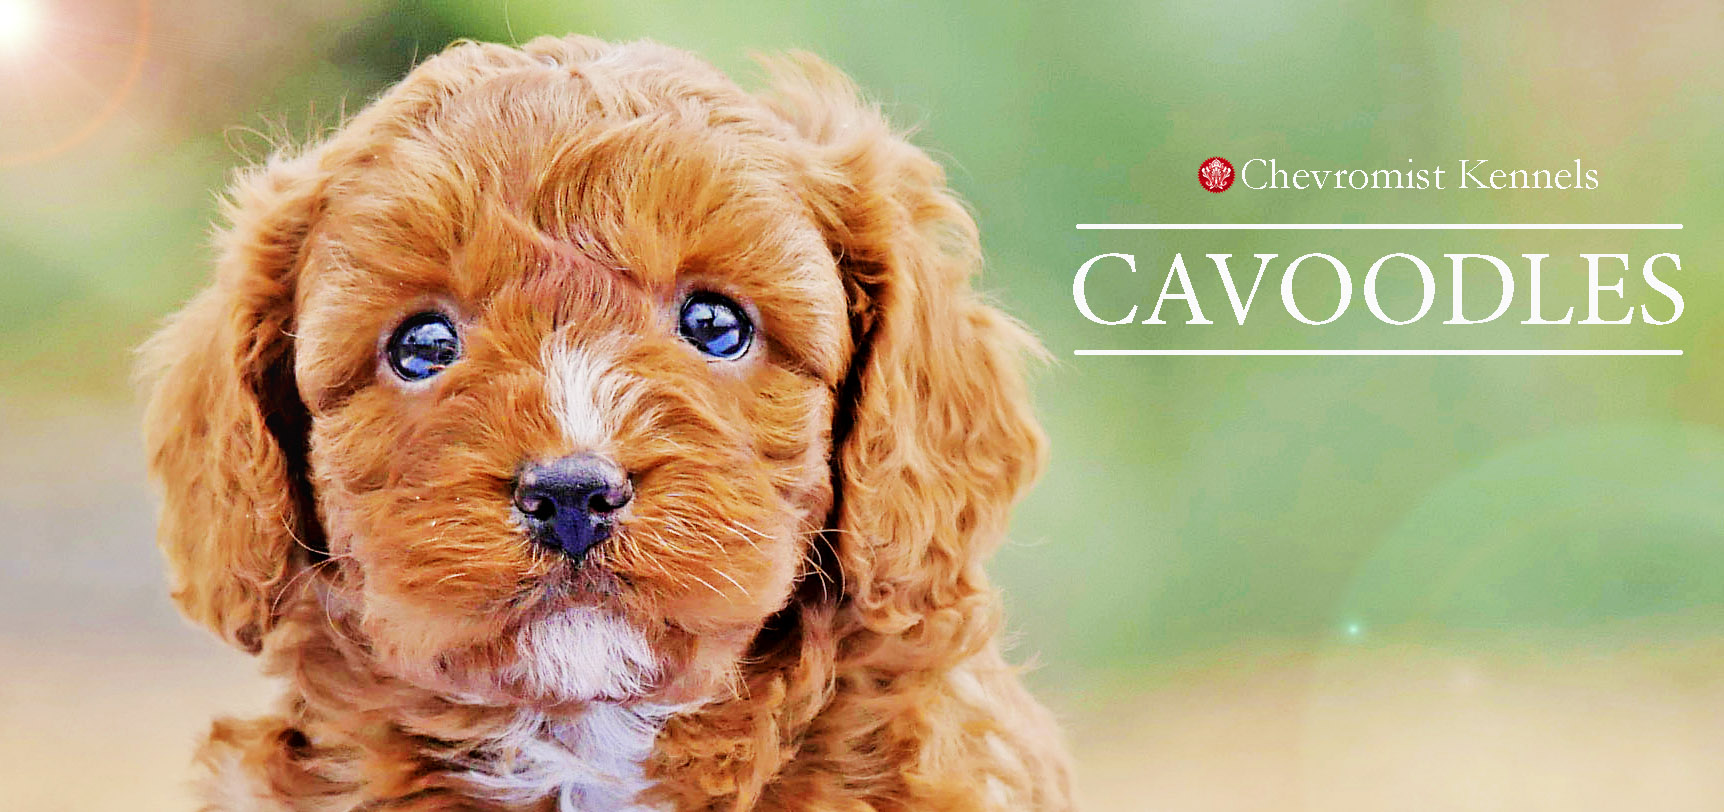 Cavoodles Chevromist Kennels Puppies Australia